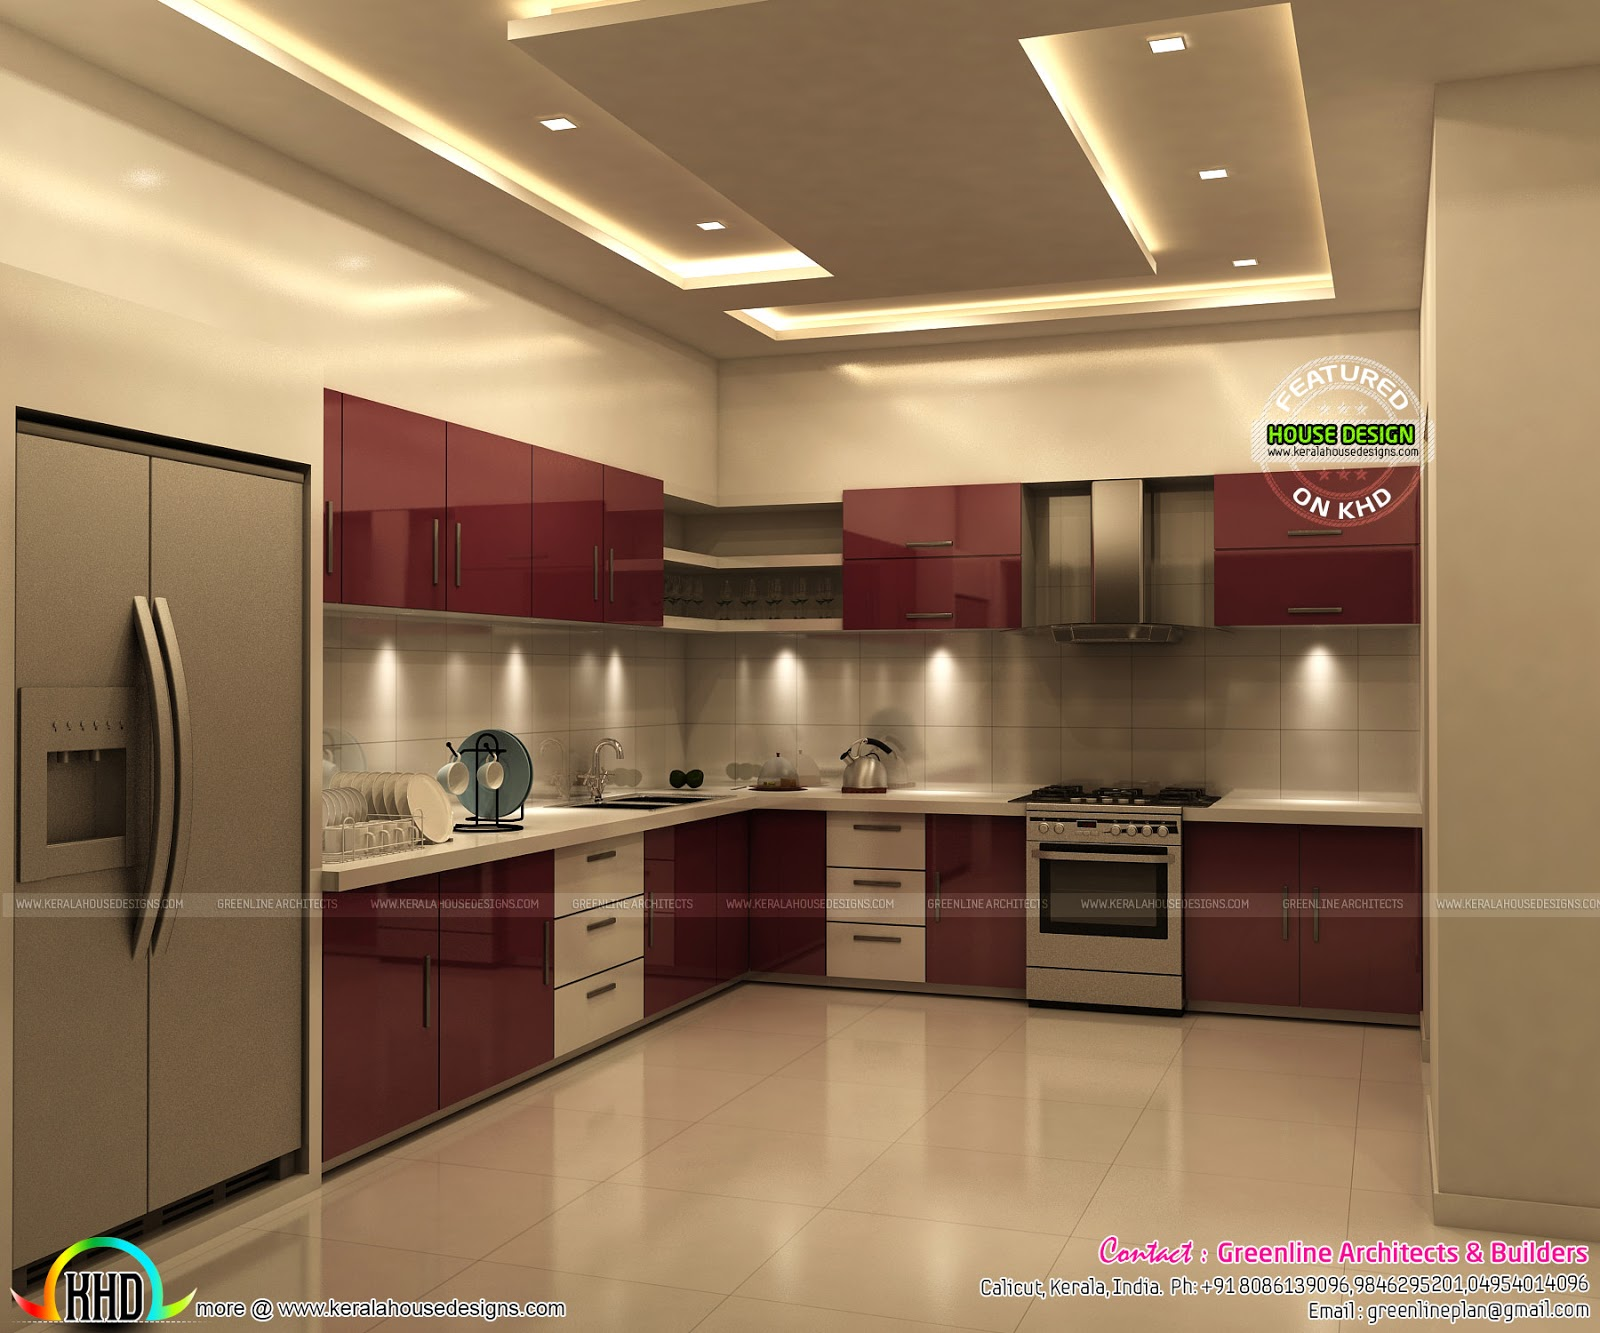 Superb kitchen and bedroom interiors kerala home design for Interior designer 7